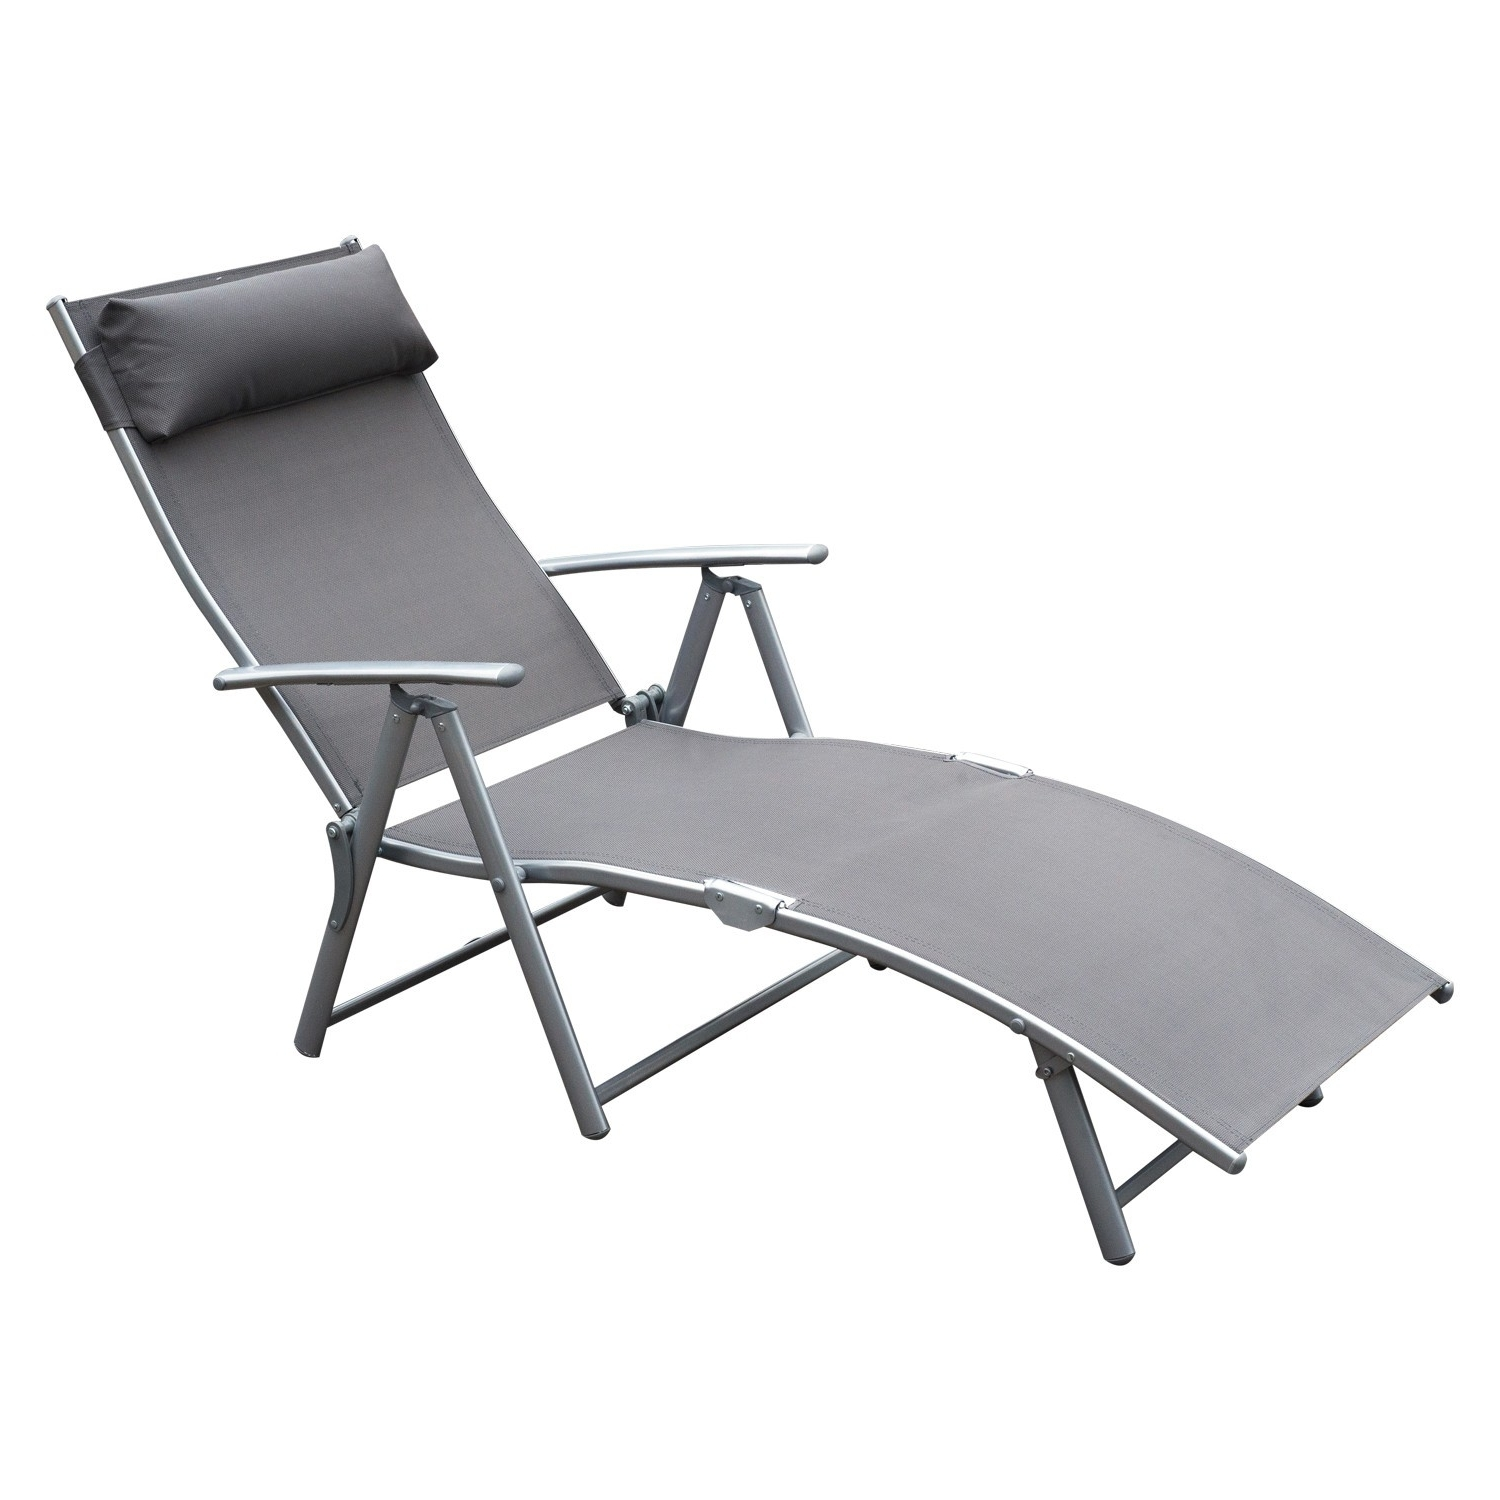 Chaise Lounge Chairs At Target With Fashionable Outdoor : Target Lounge Chairs Folding Lounge Chair Target Outdoor (View 5 of 15)